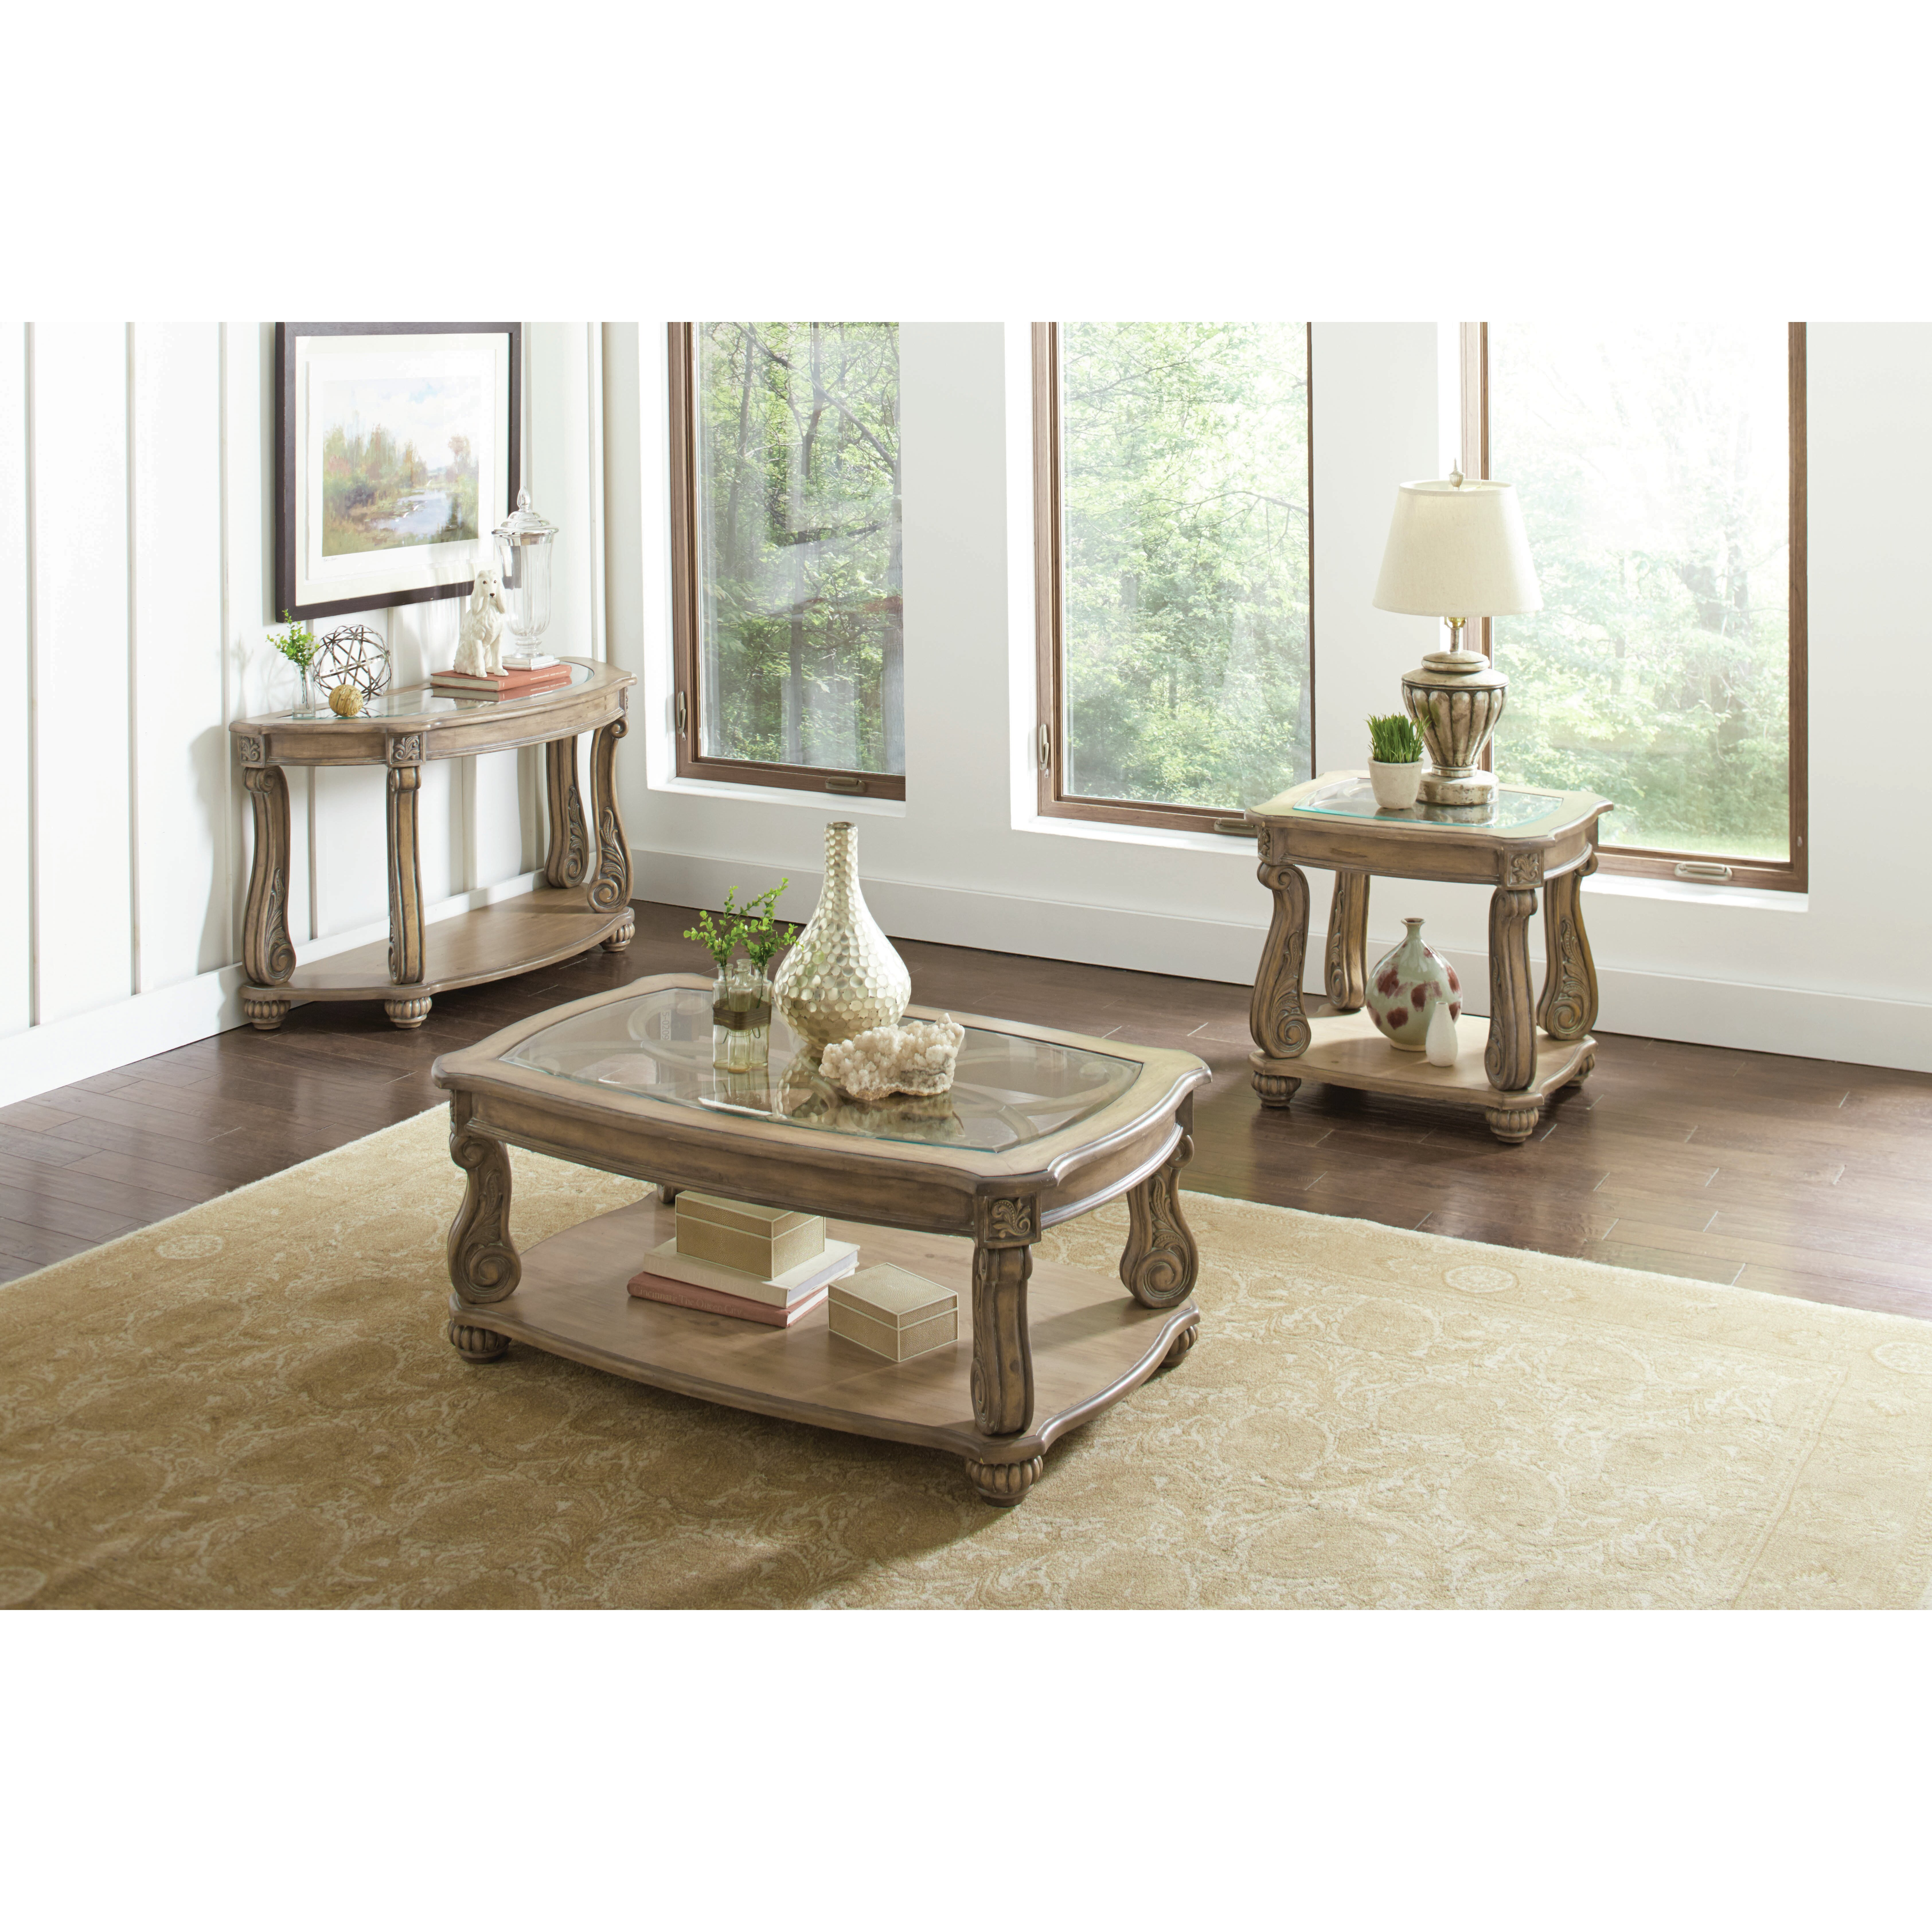 Astoria Grand Holloway Coffee Table & Reviews